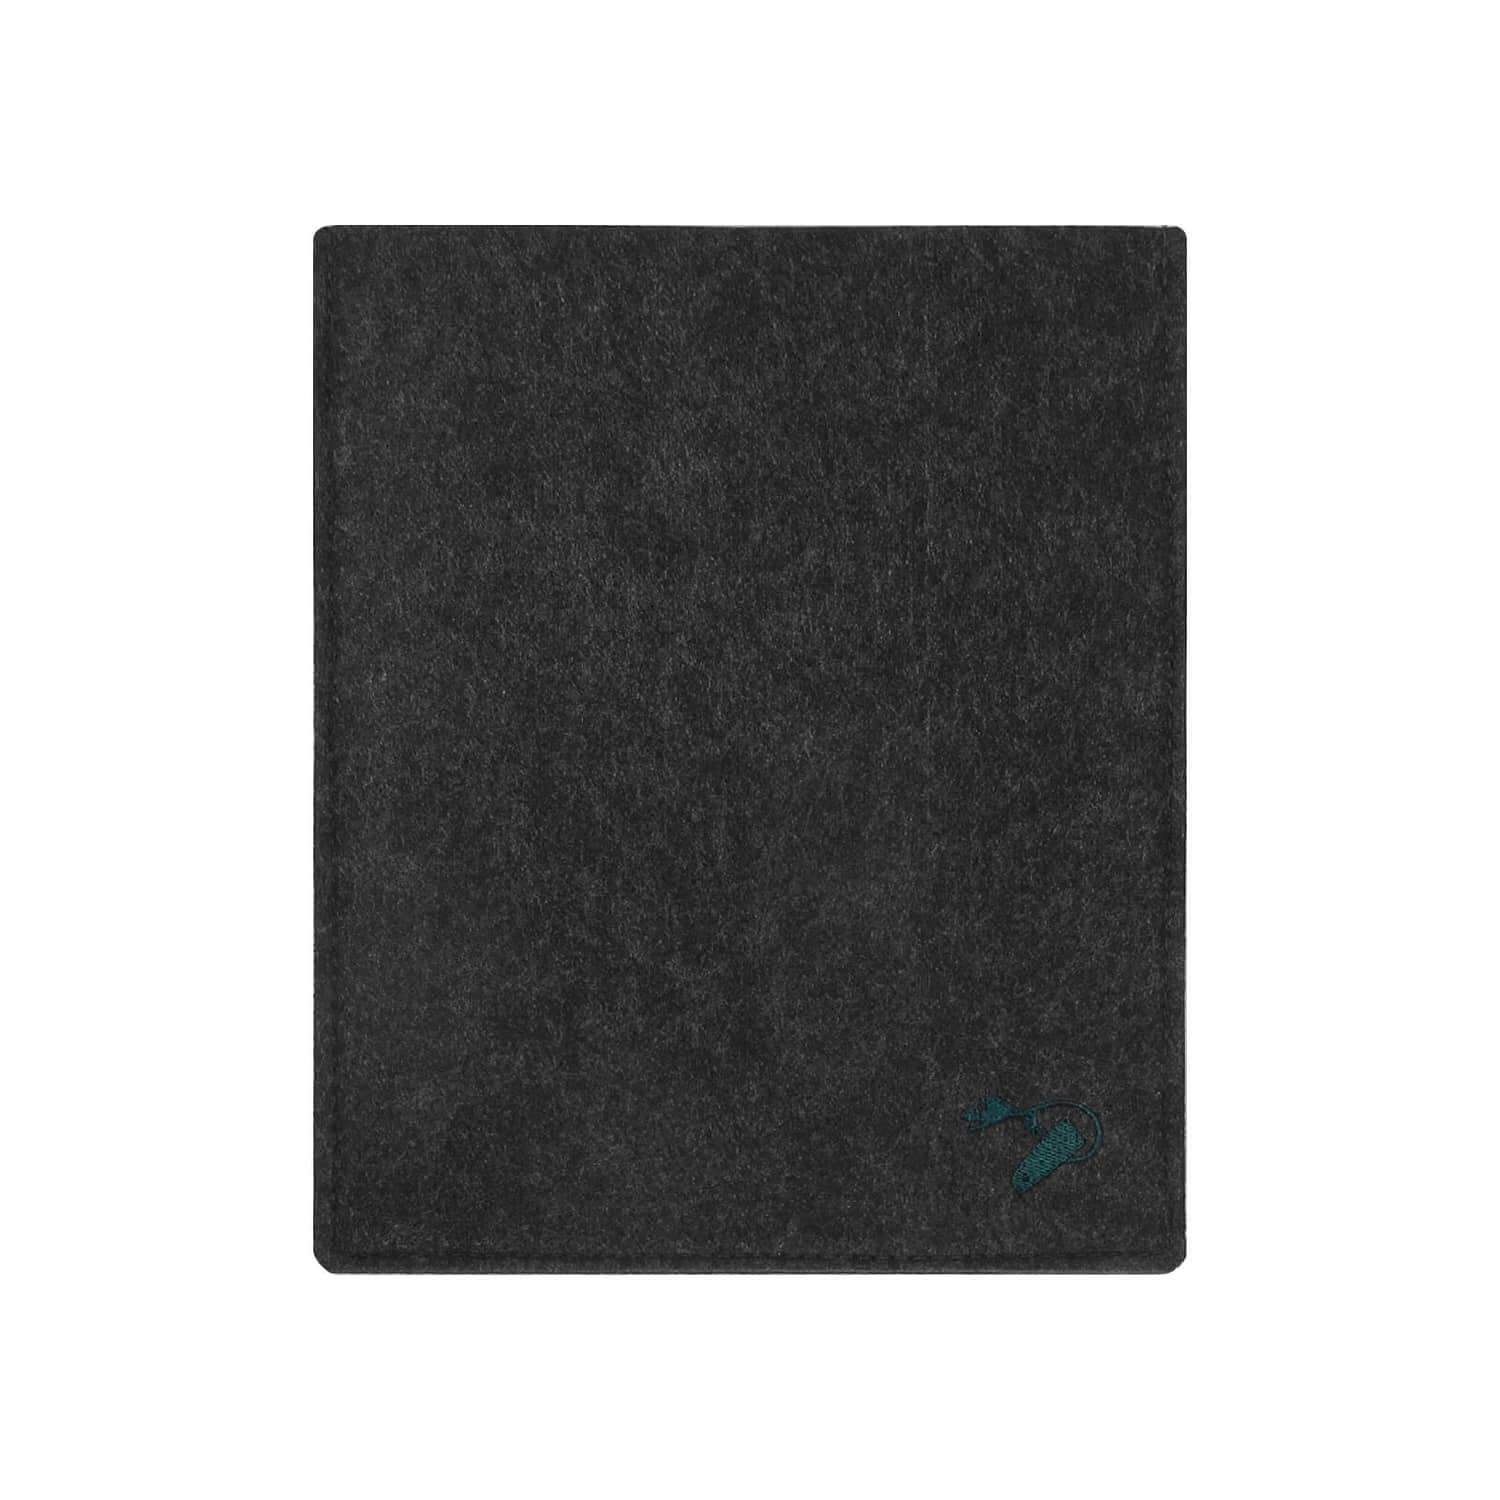 Felt case tablet 9.7 - business darkgrey 1